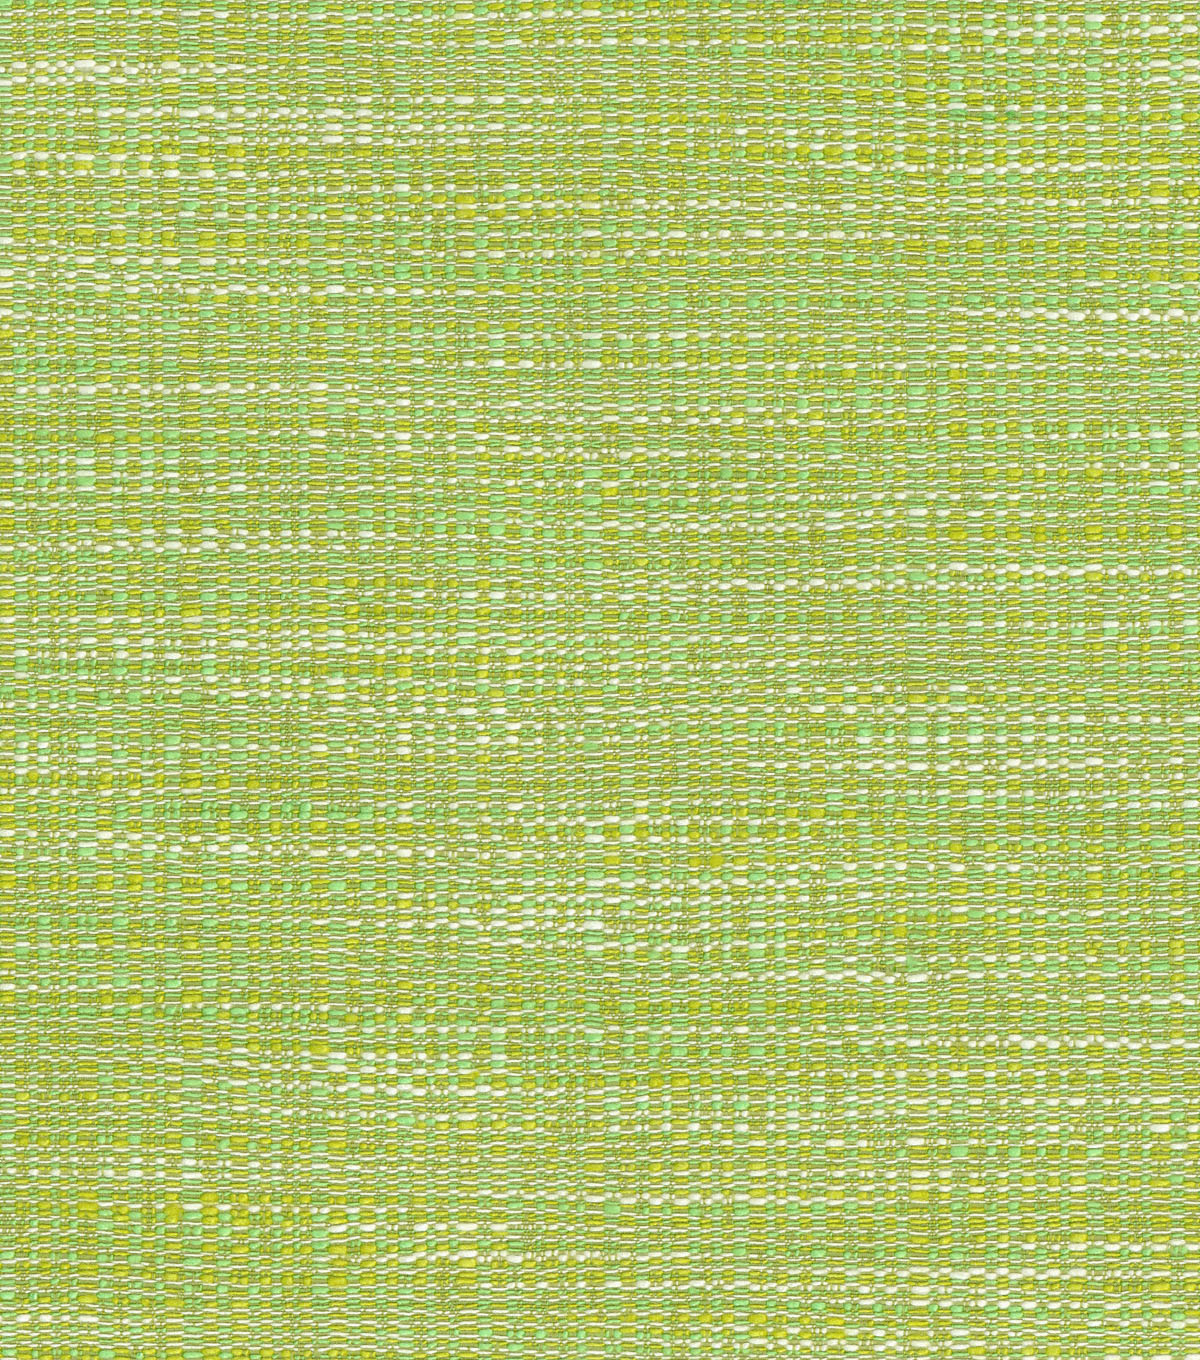 Solid Ground Meadow Swatch